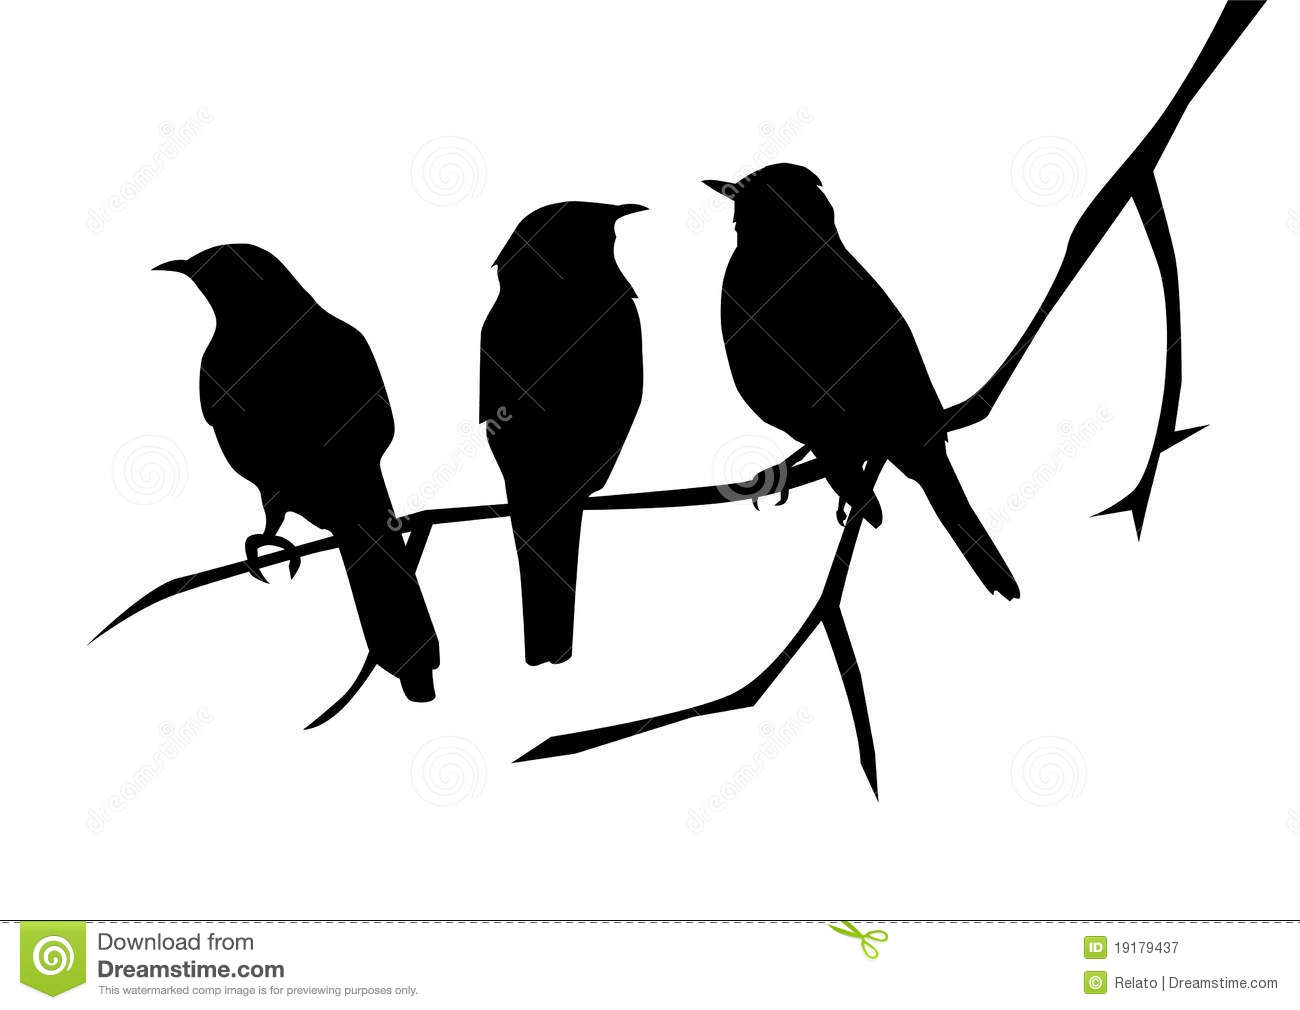 What does three black crows symbolize